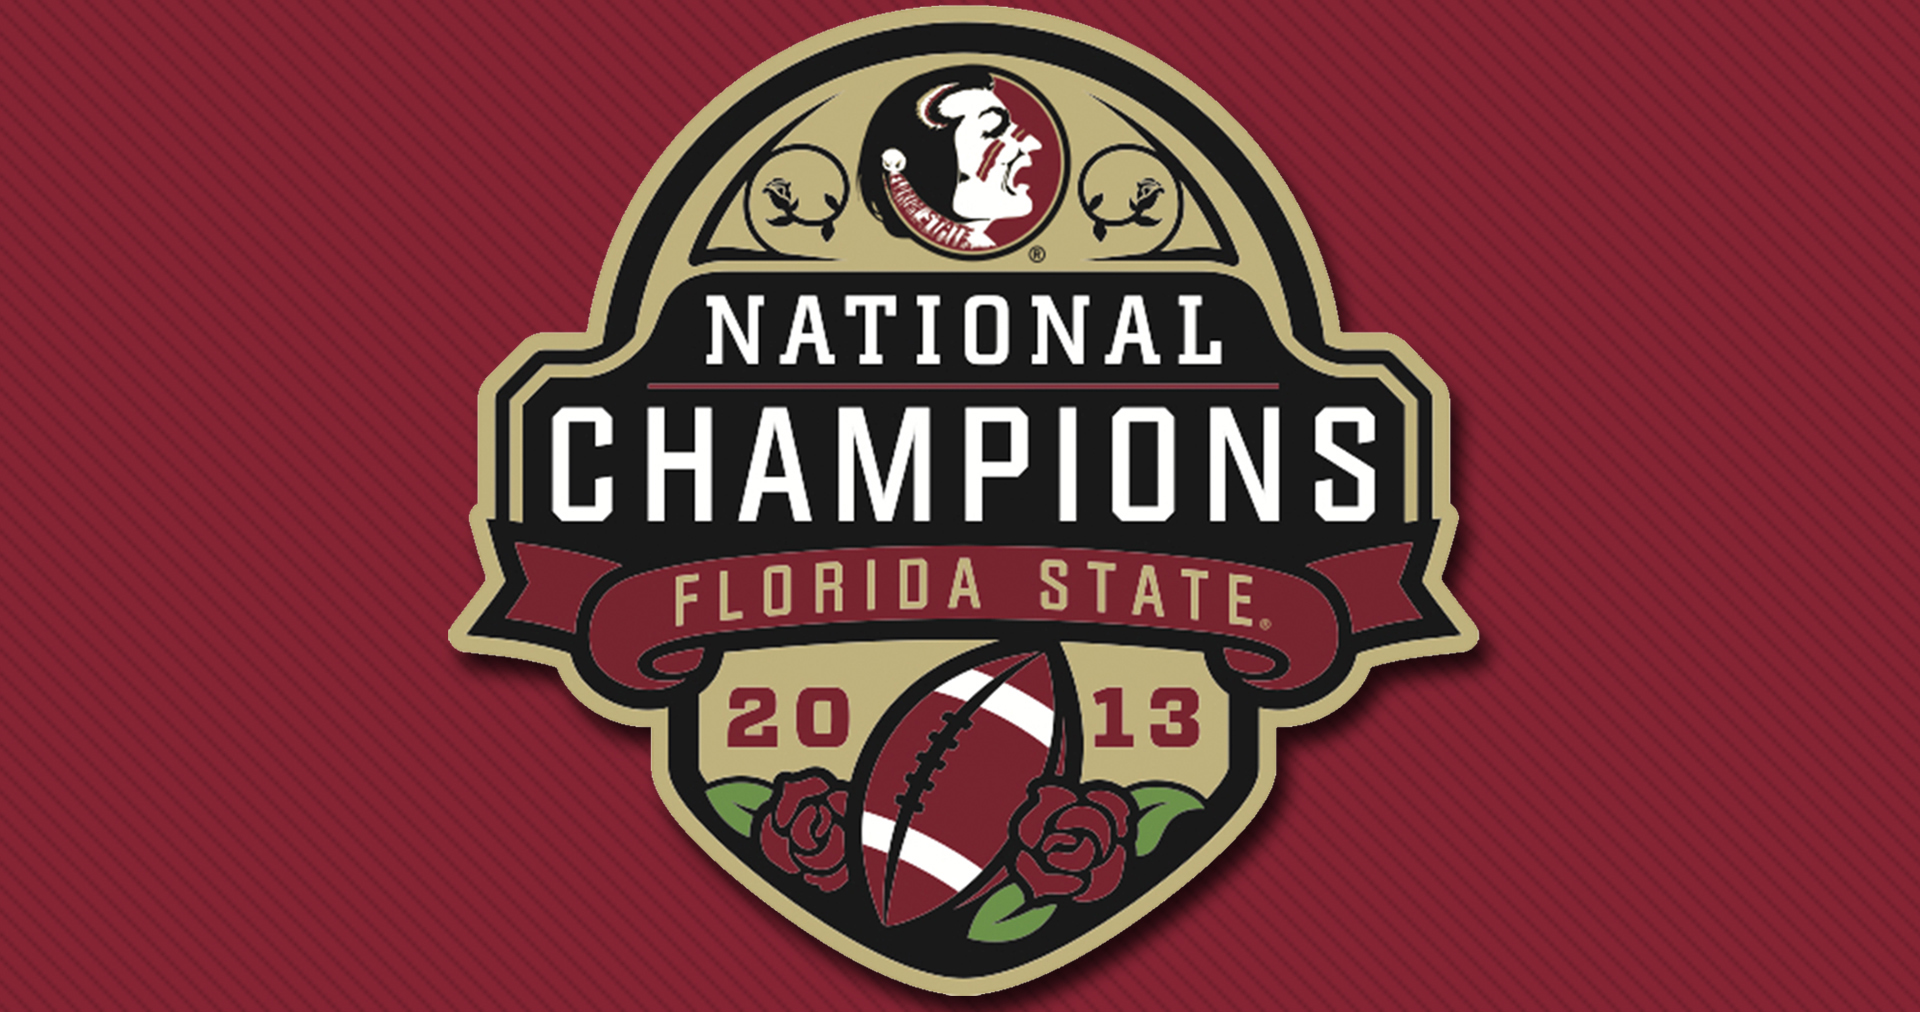 florida state wallpapers 30 wallpapers � adorable wallpapers